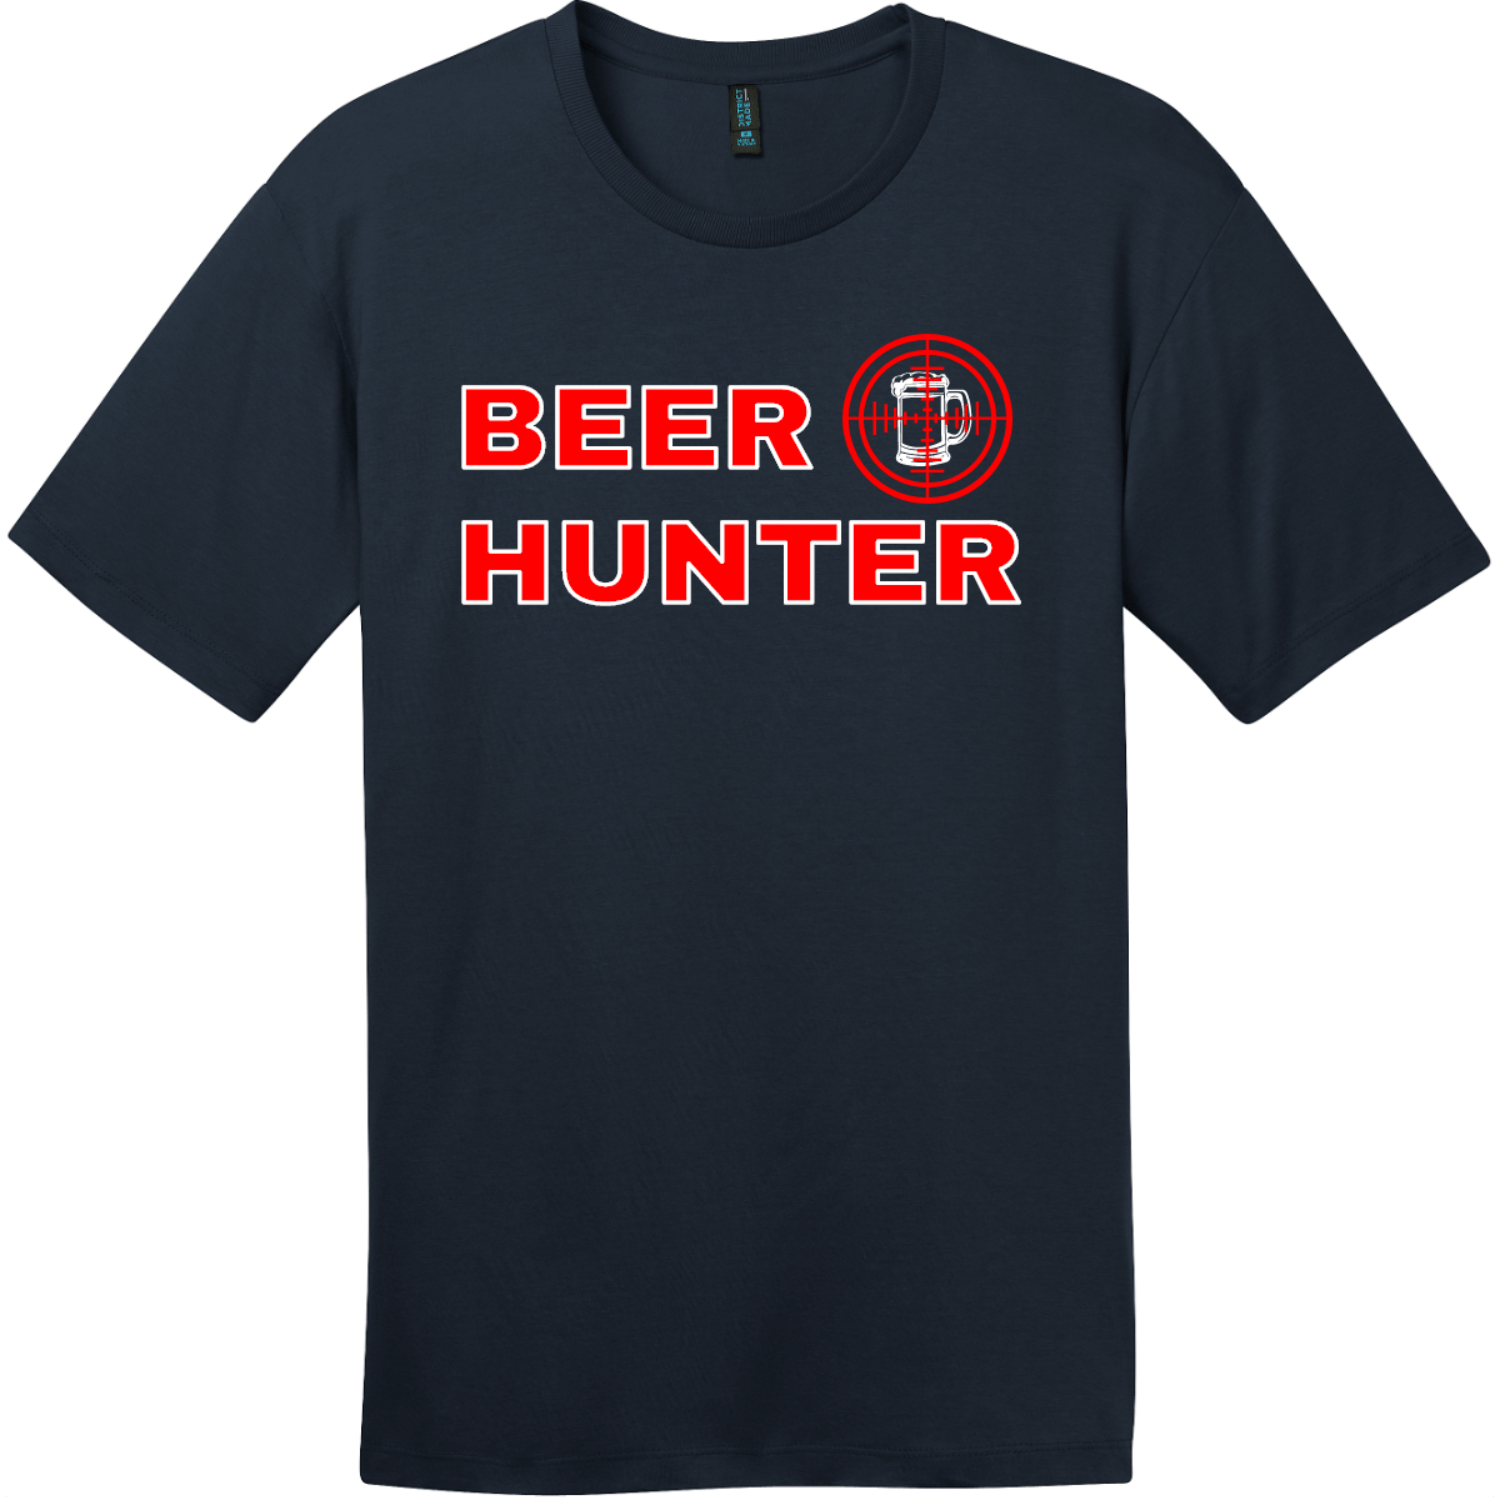 Beer Hunter Funny Beer T-Shirt New Navy District Perfect Weight Tee DT104